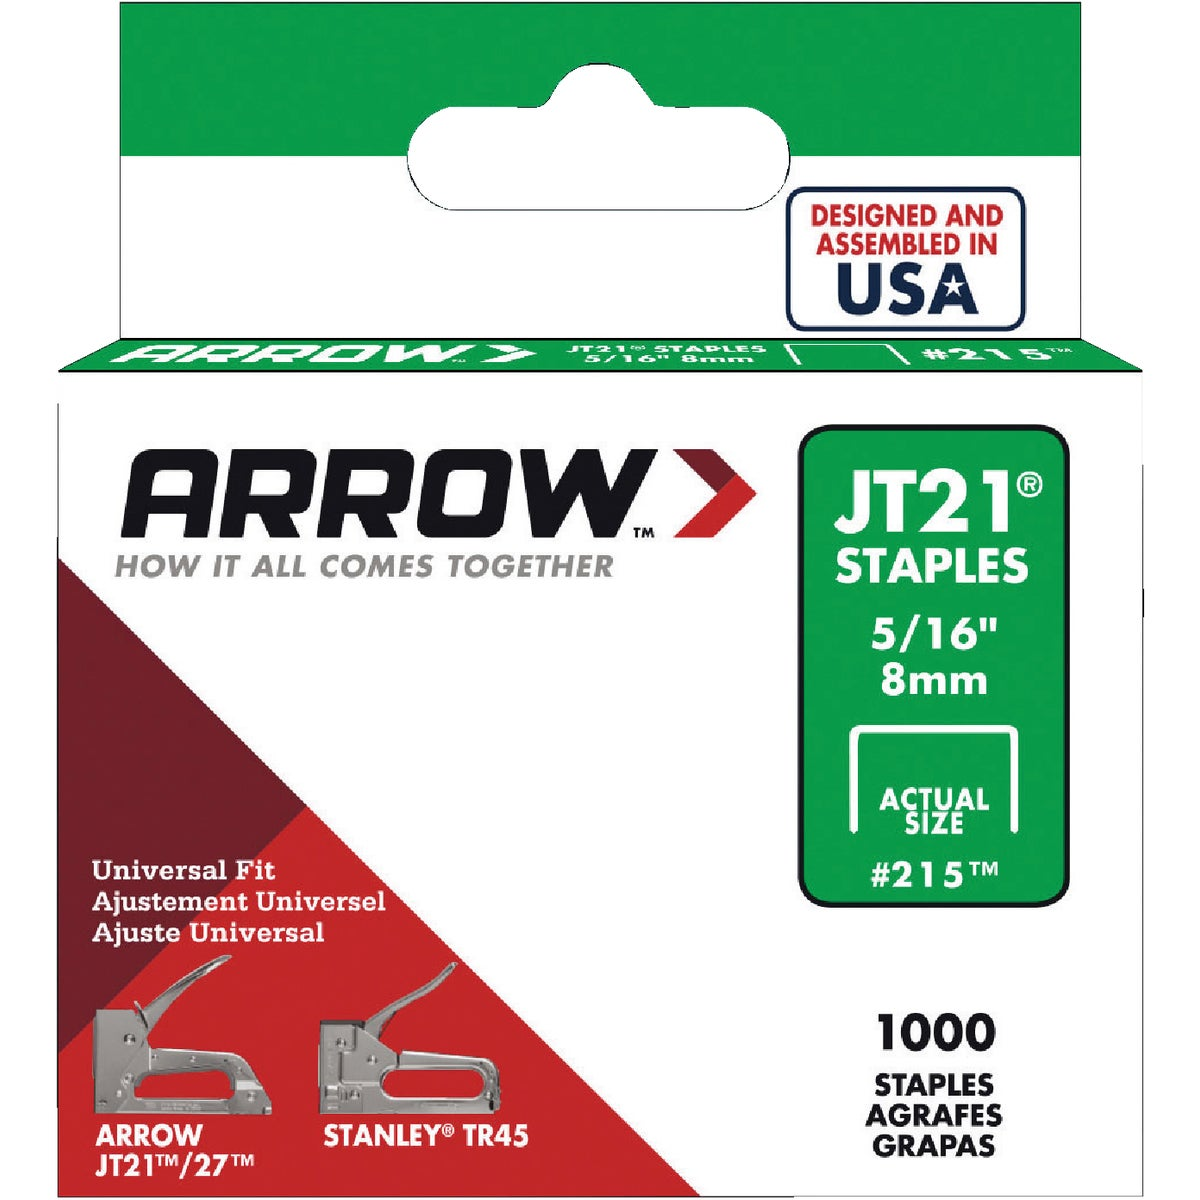 "5/16"" STAPLE - 215 by Arrow Fastener Co"